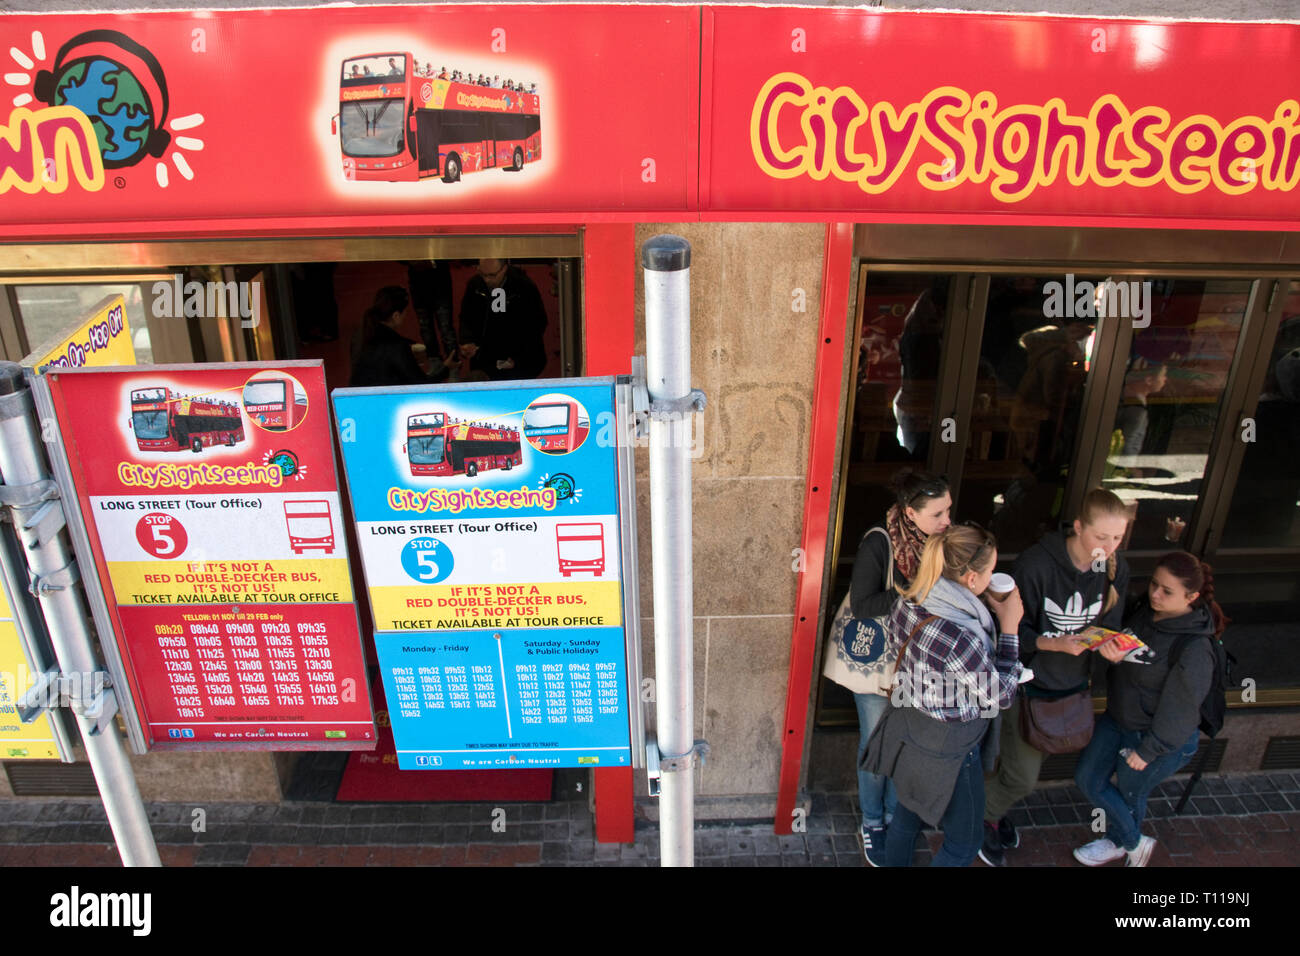 Tourists wait for the City Sightseeing tour bus at a bus stop in downtown Cape Town, South Africa. - Stock Image